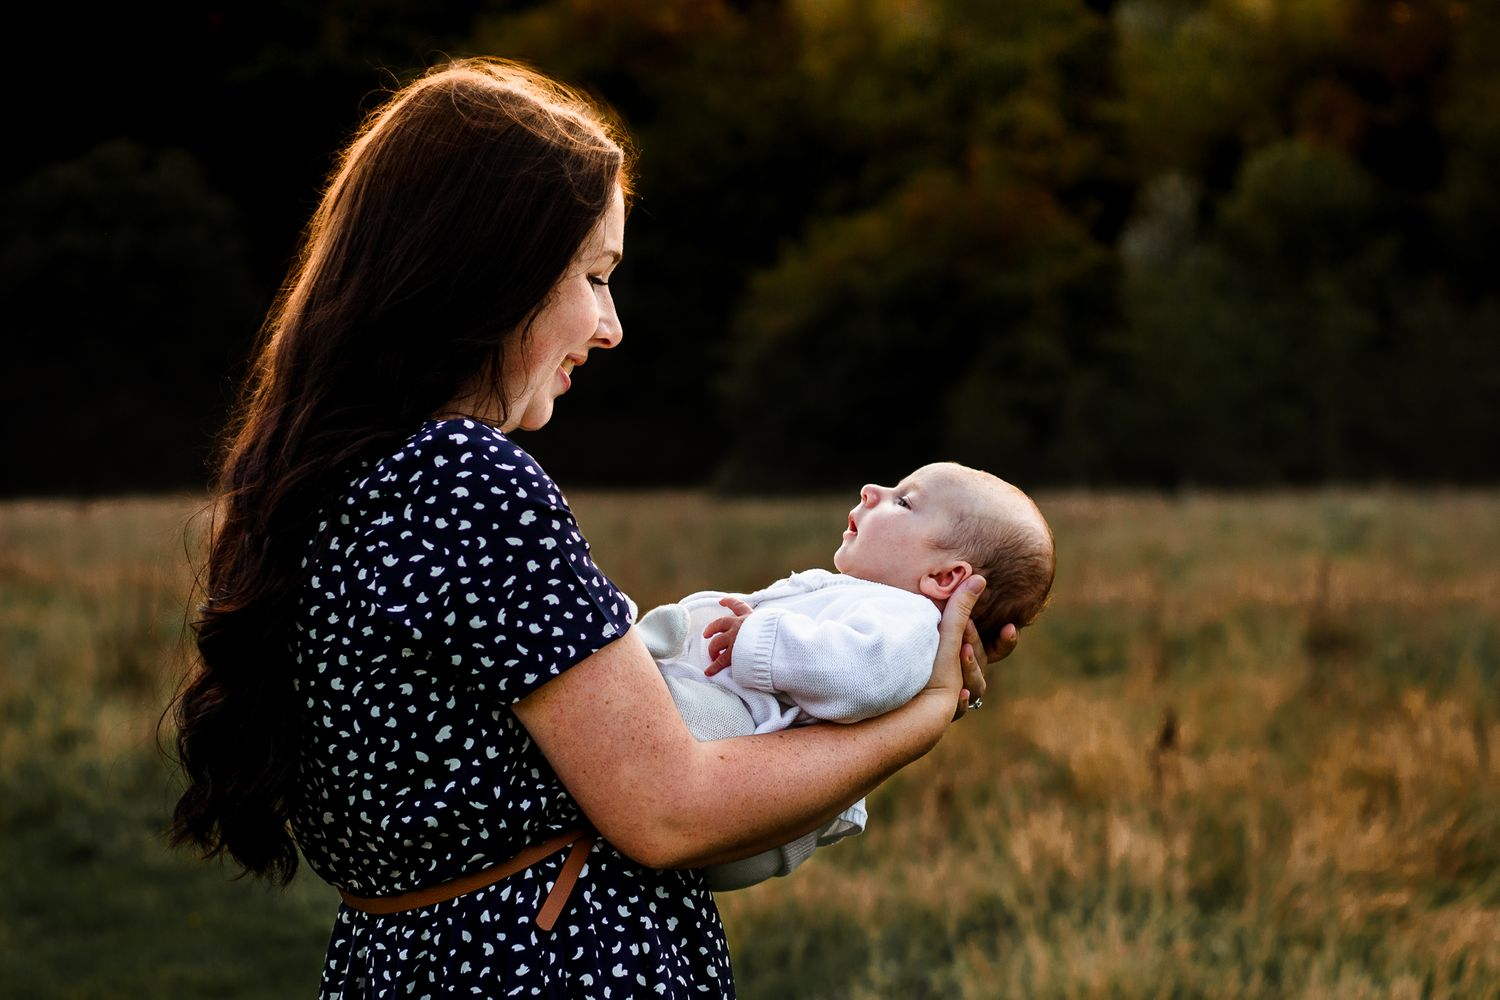 In a field in Havant, Hampshire, a new mum holds her newborn baby boy.